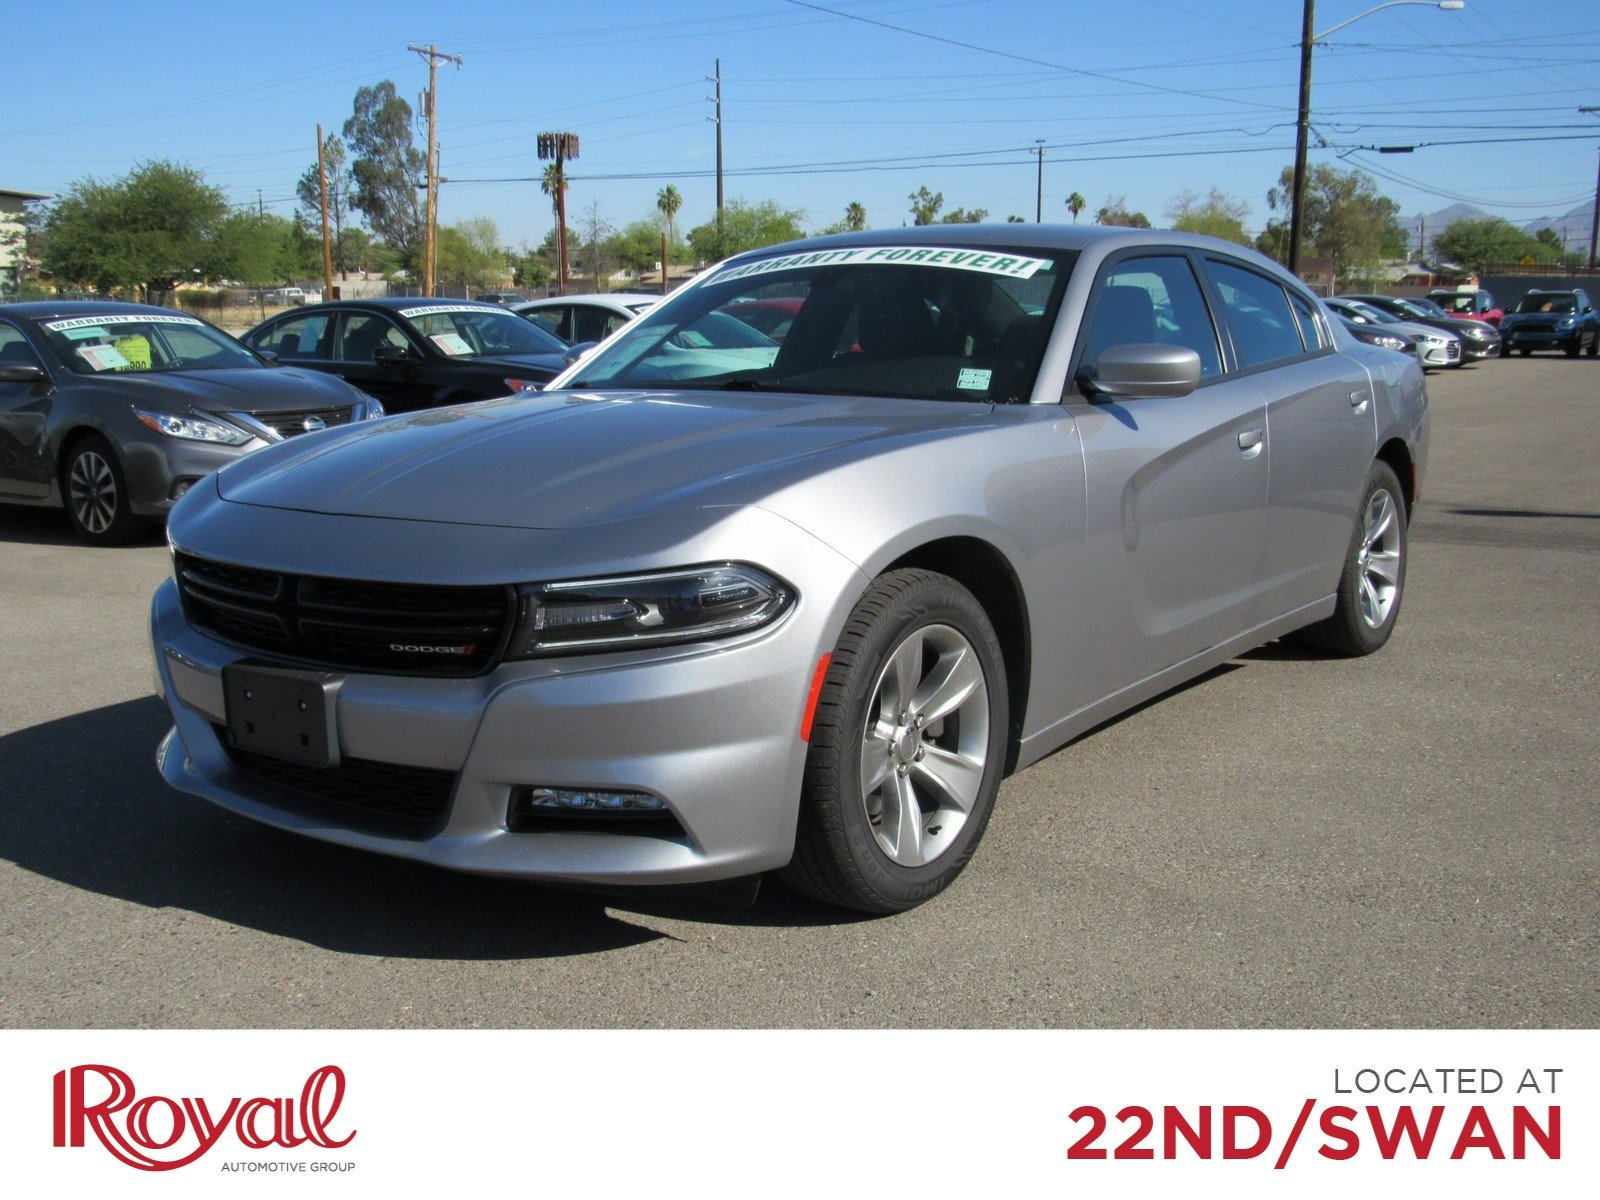 Pre-Owned 2018 Dodge Charger SXT Plus 4dr Car in Tucson #PD29416 | Royal Automotive Group